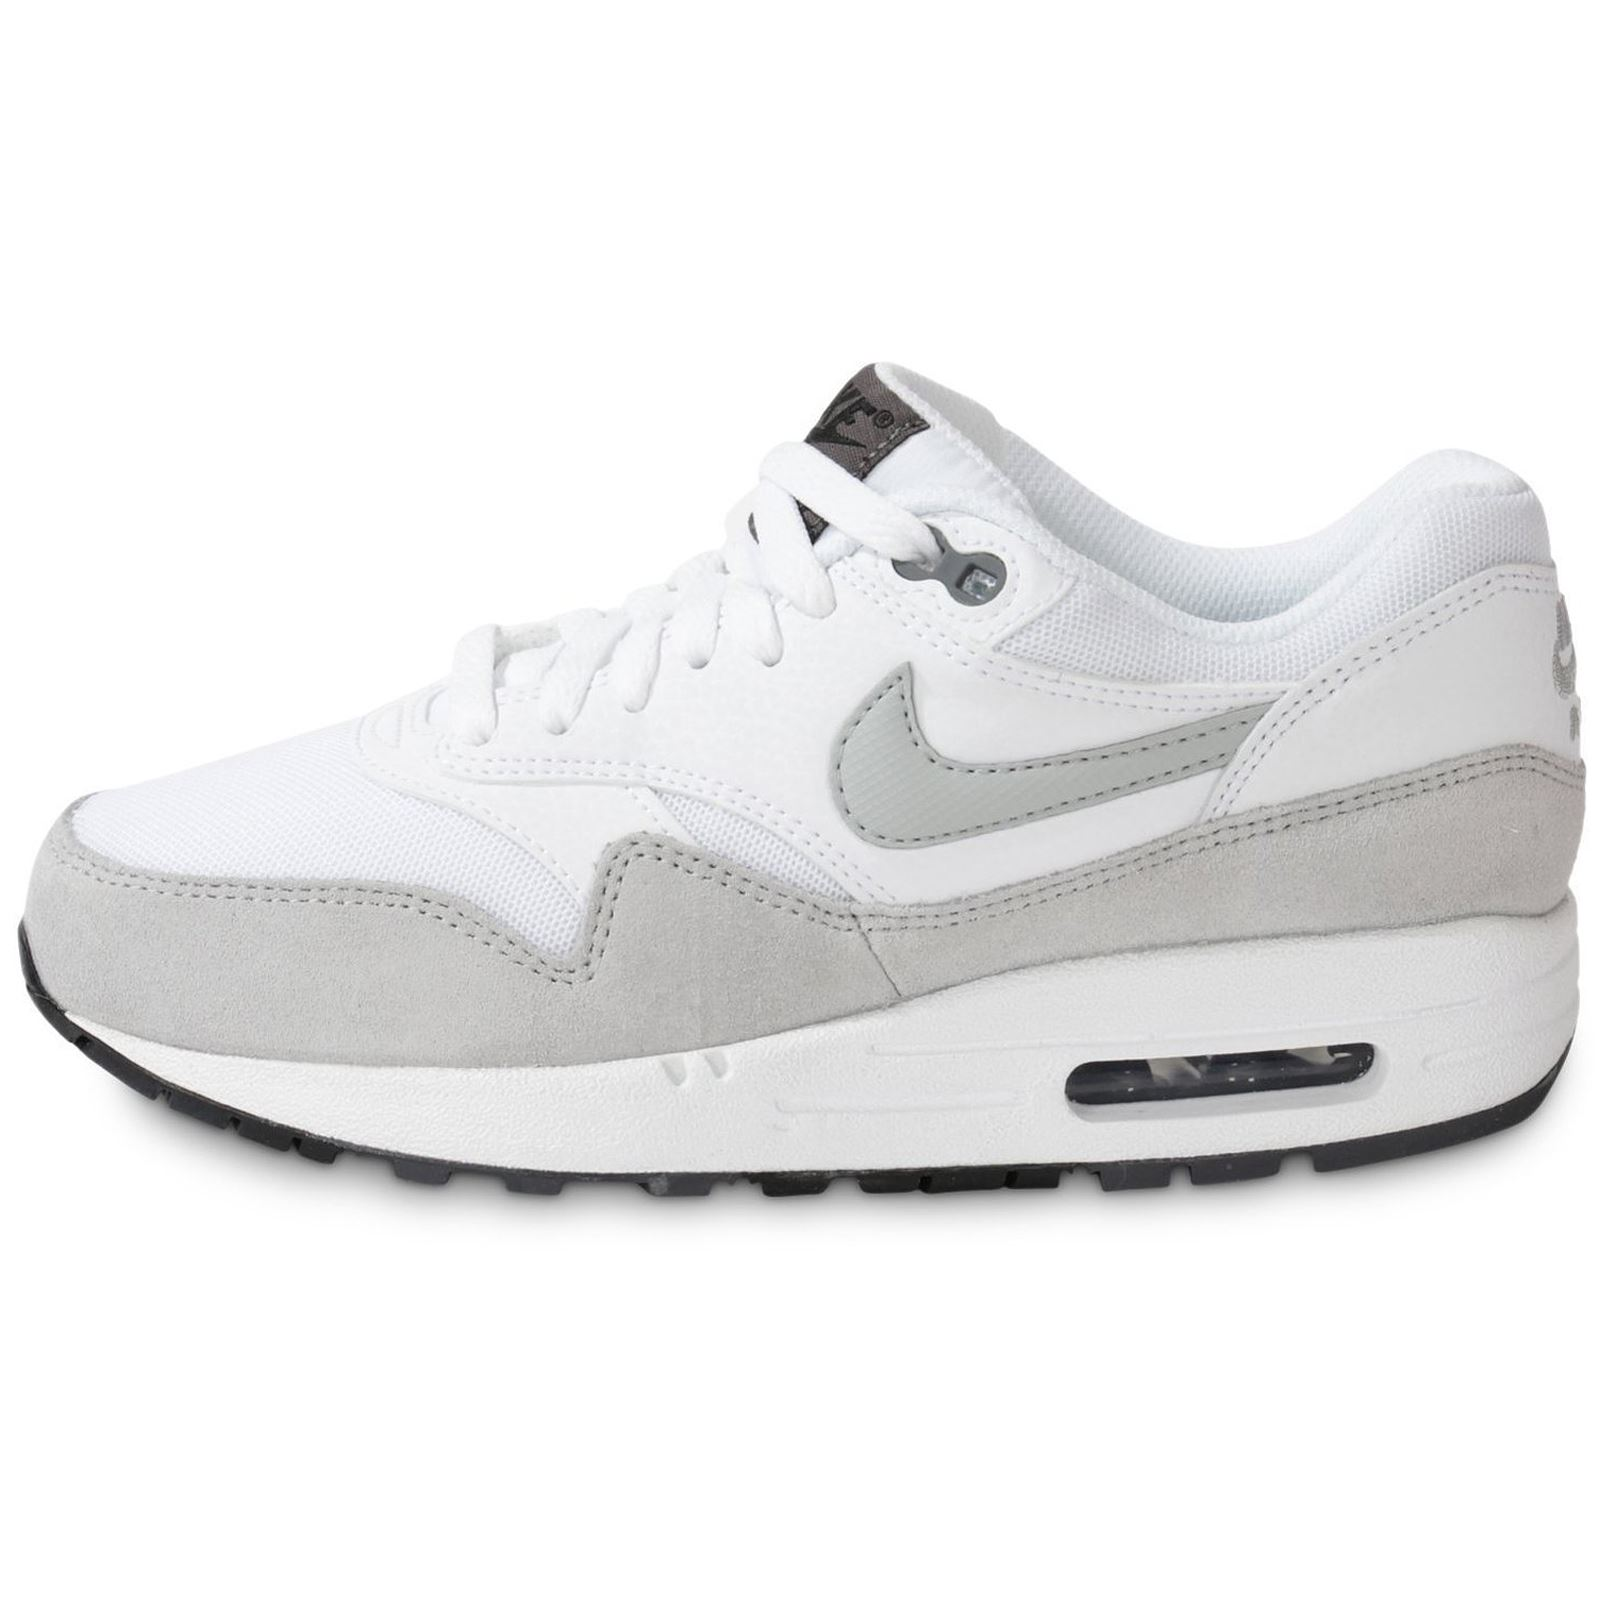 nike air max 1 essential leather womens trainers ebay. Black Bedroom Furniture Sets. Home Design Ideas